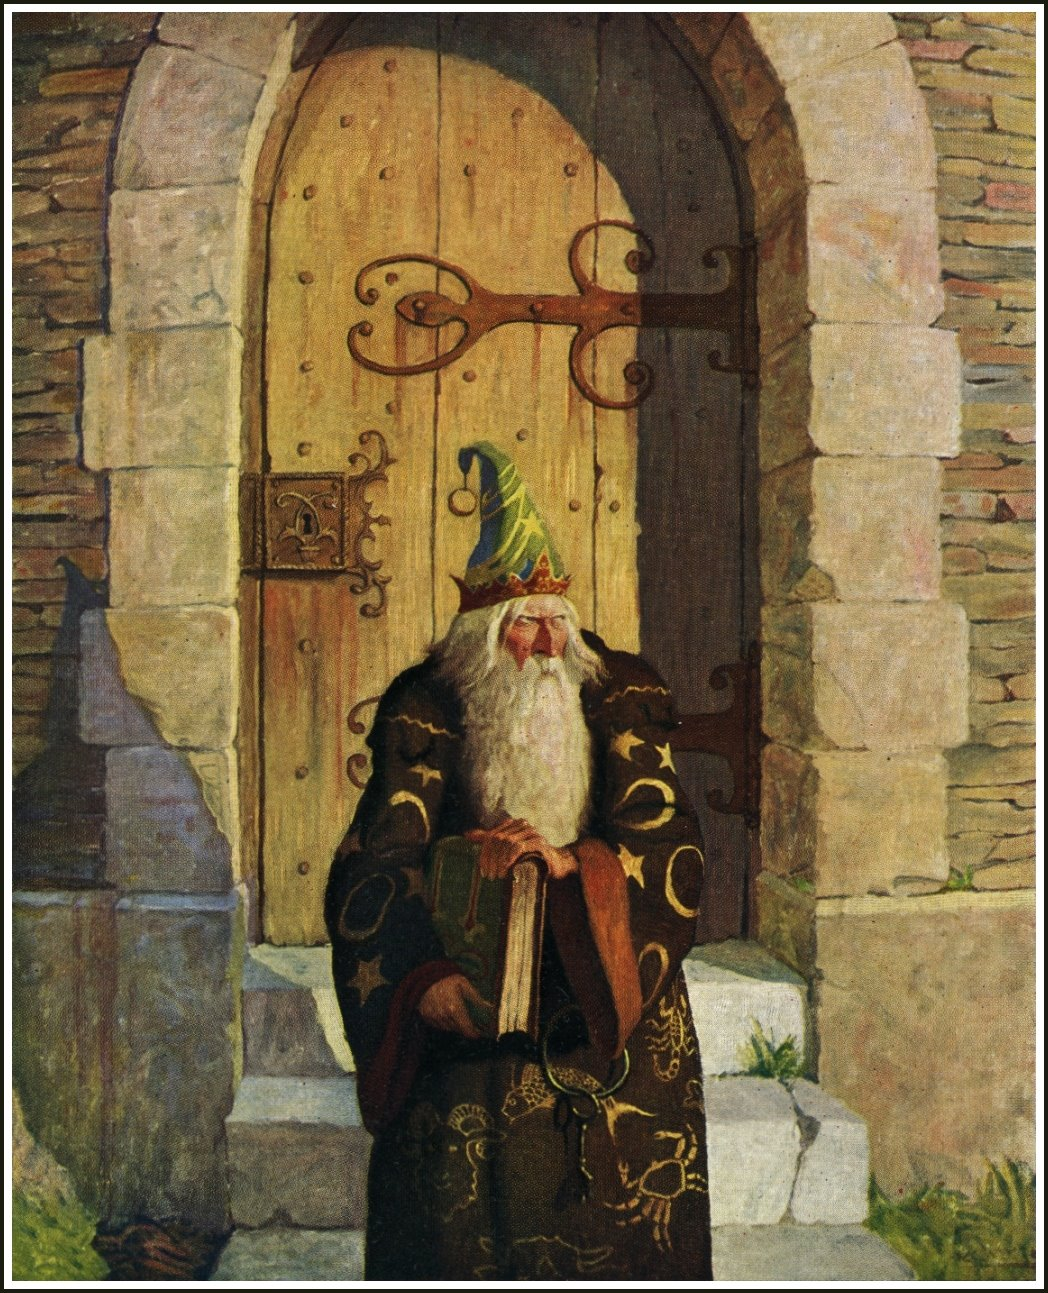 JRC-1138 (moif's primary blog): Artist of the Month; NC Wyeth